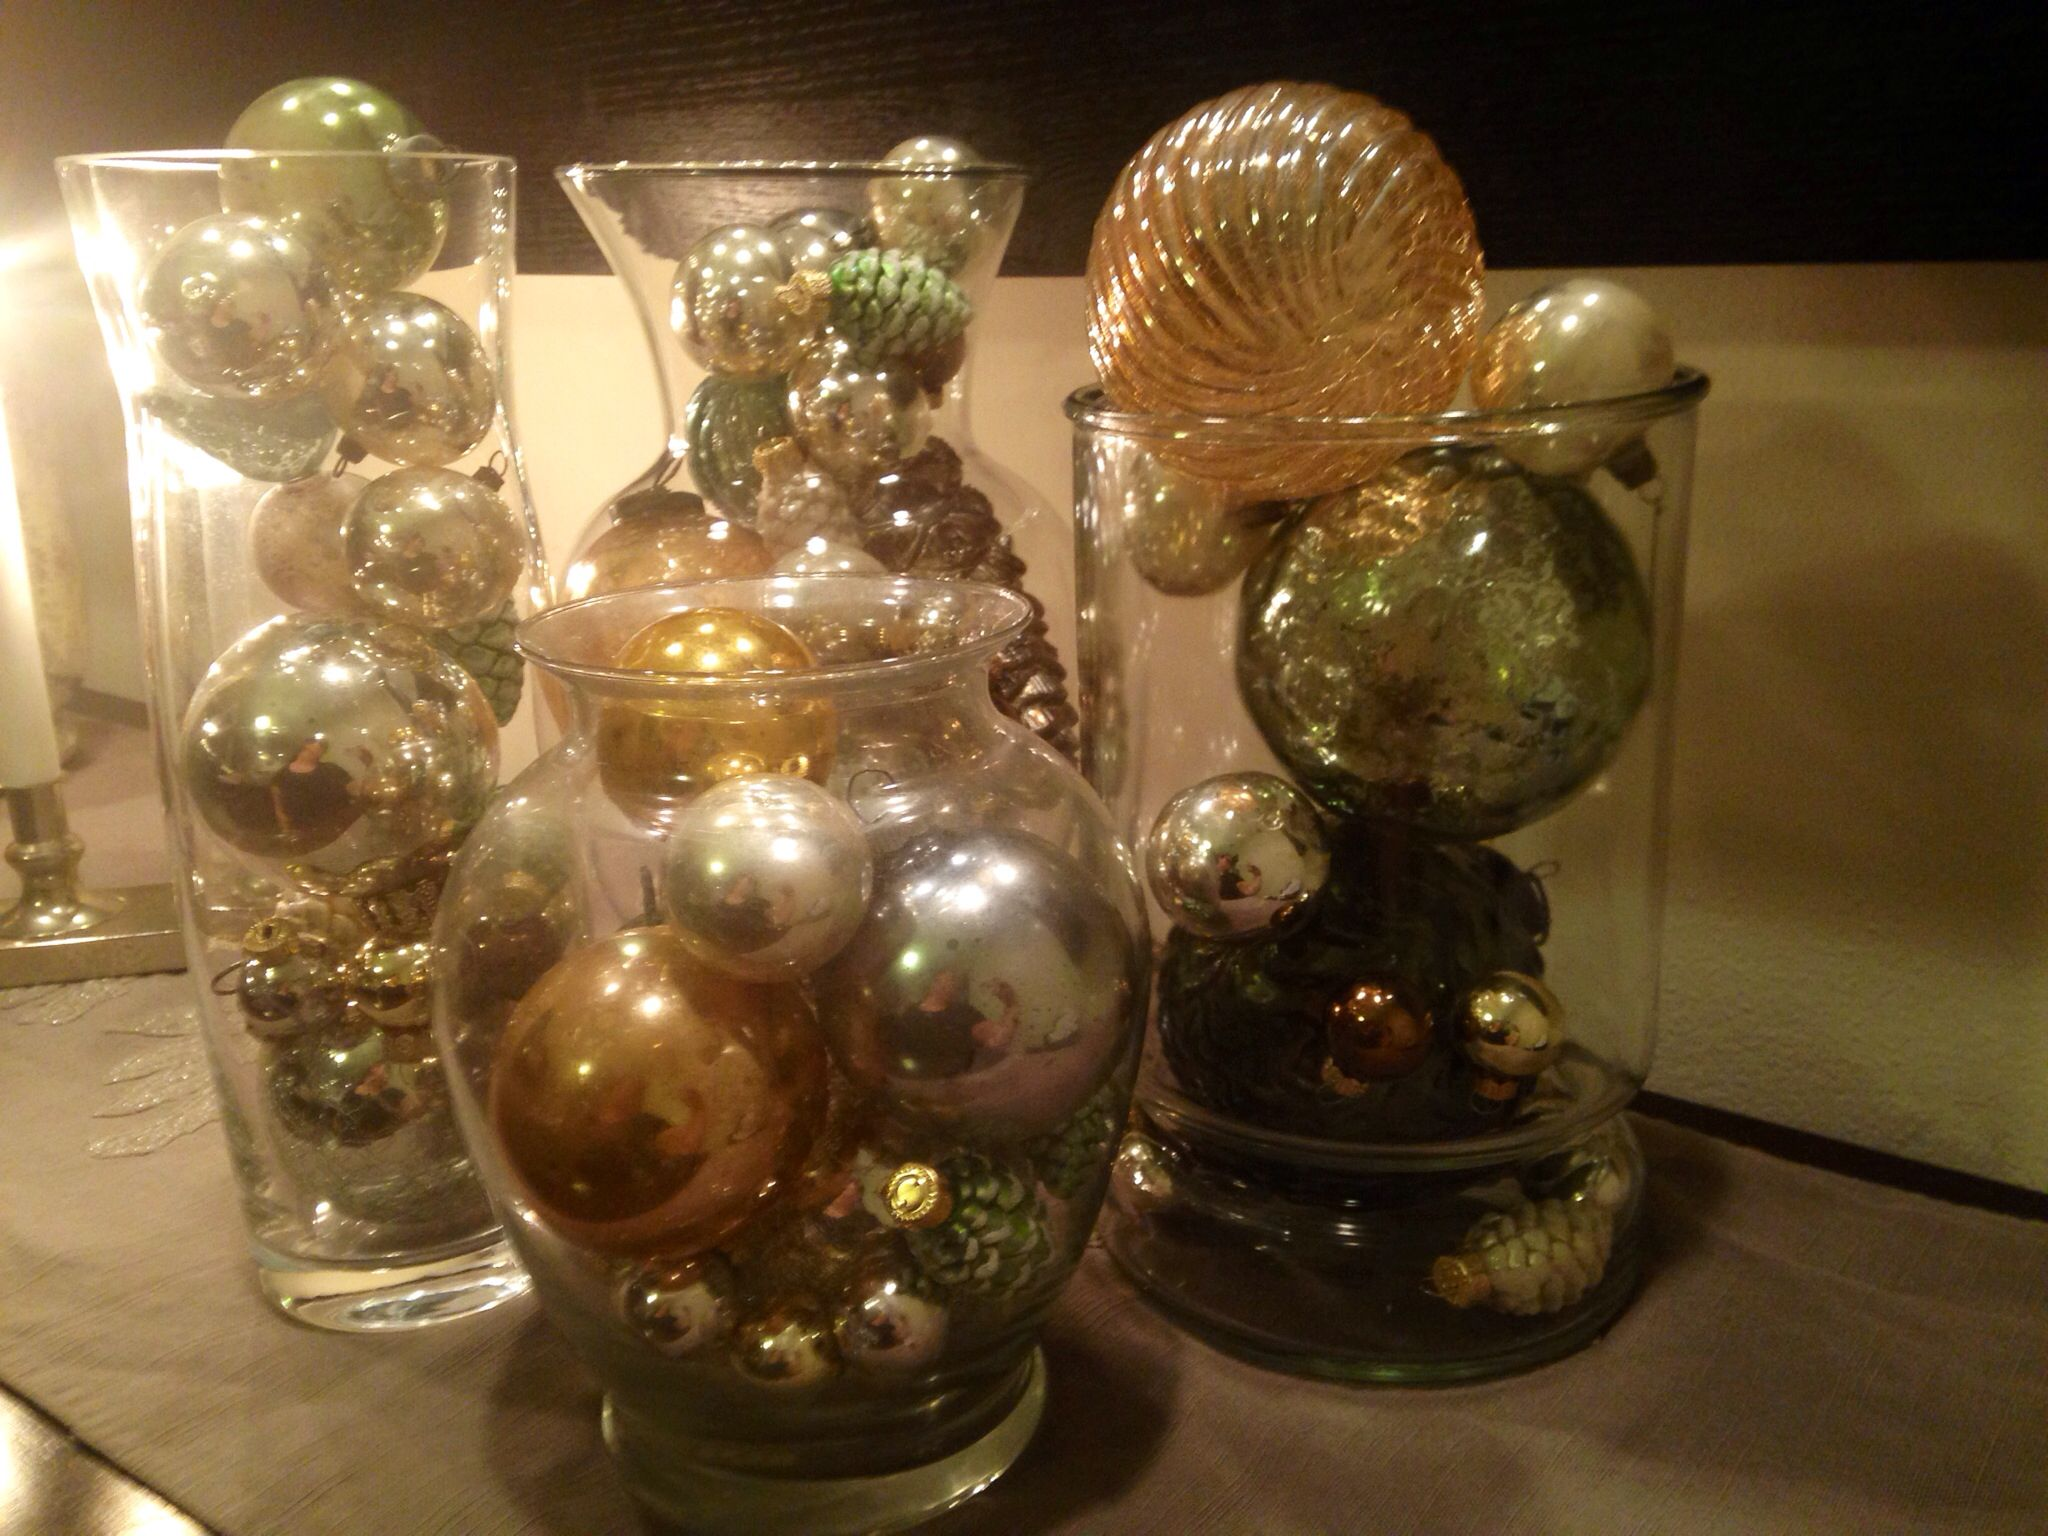 Fill glass vases with antique and new Christmas ornaments!